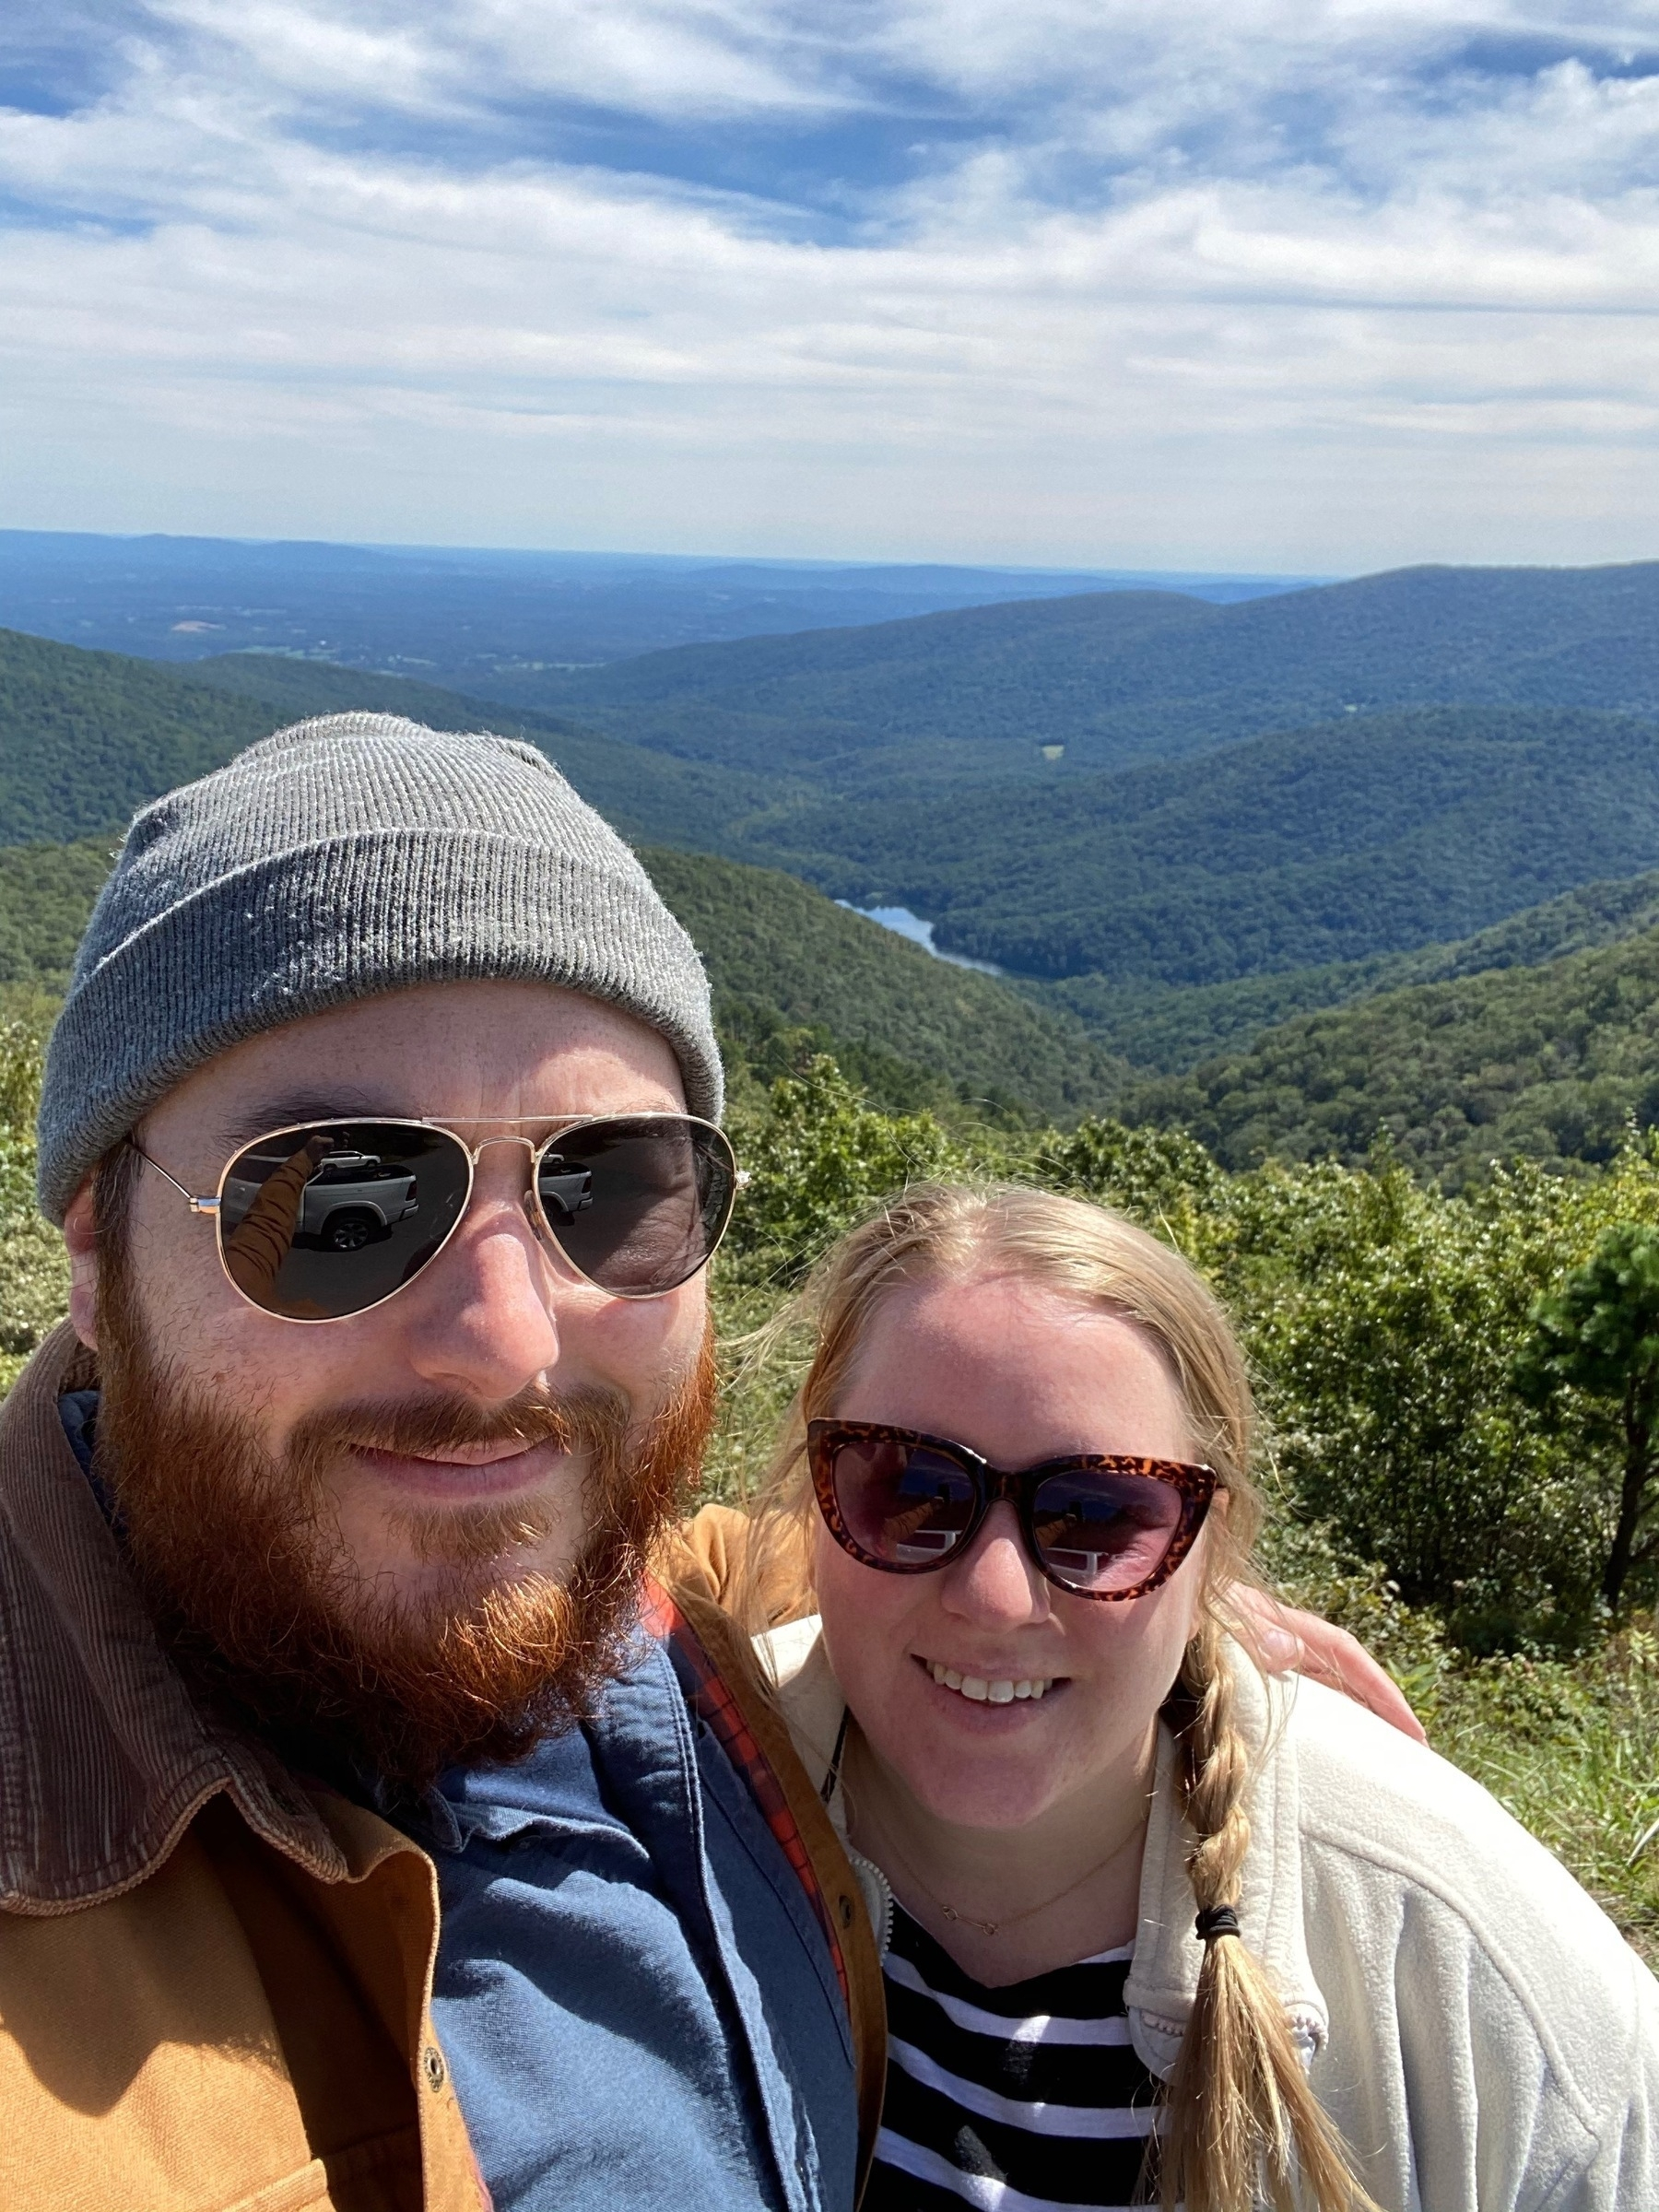 Us at the Moorman's River Overlook.